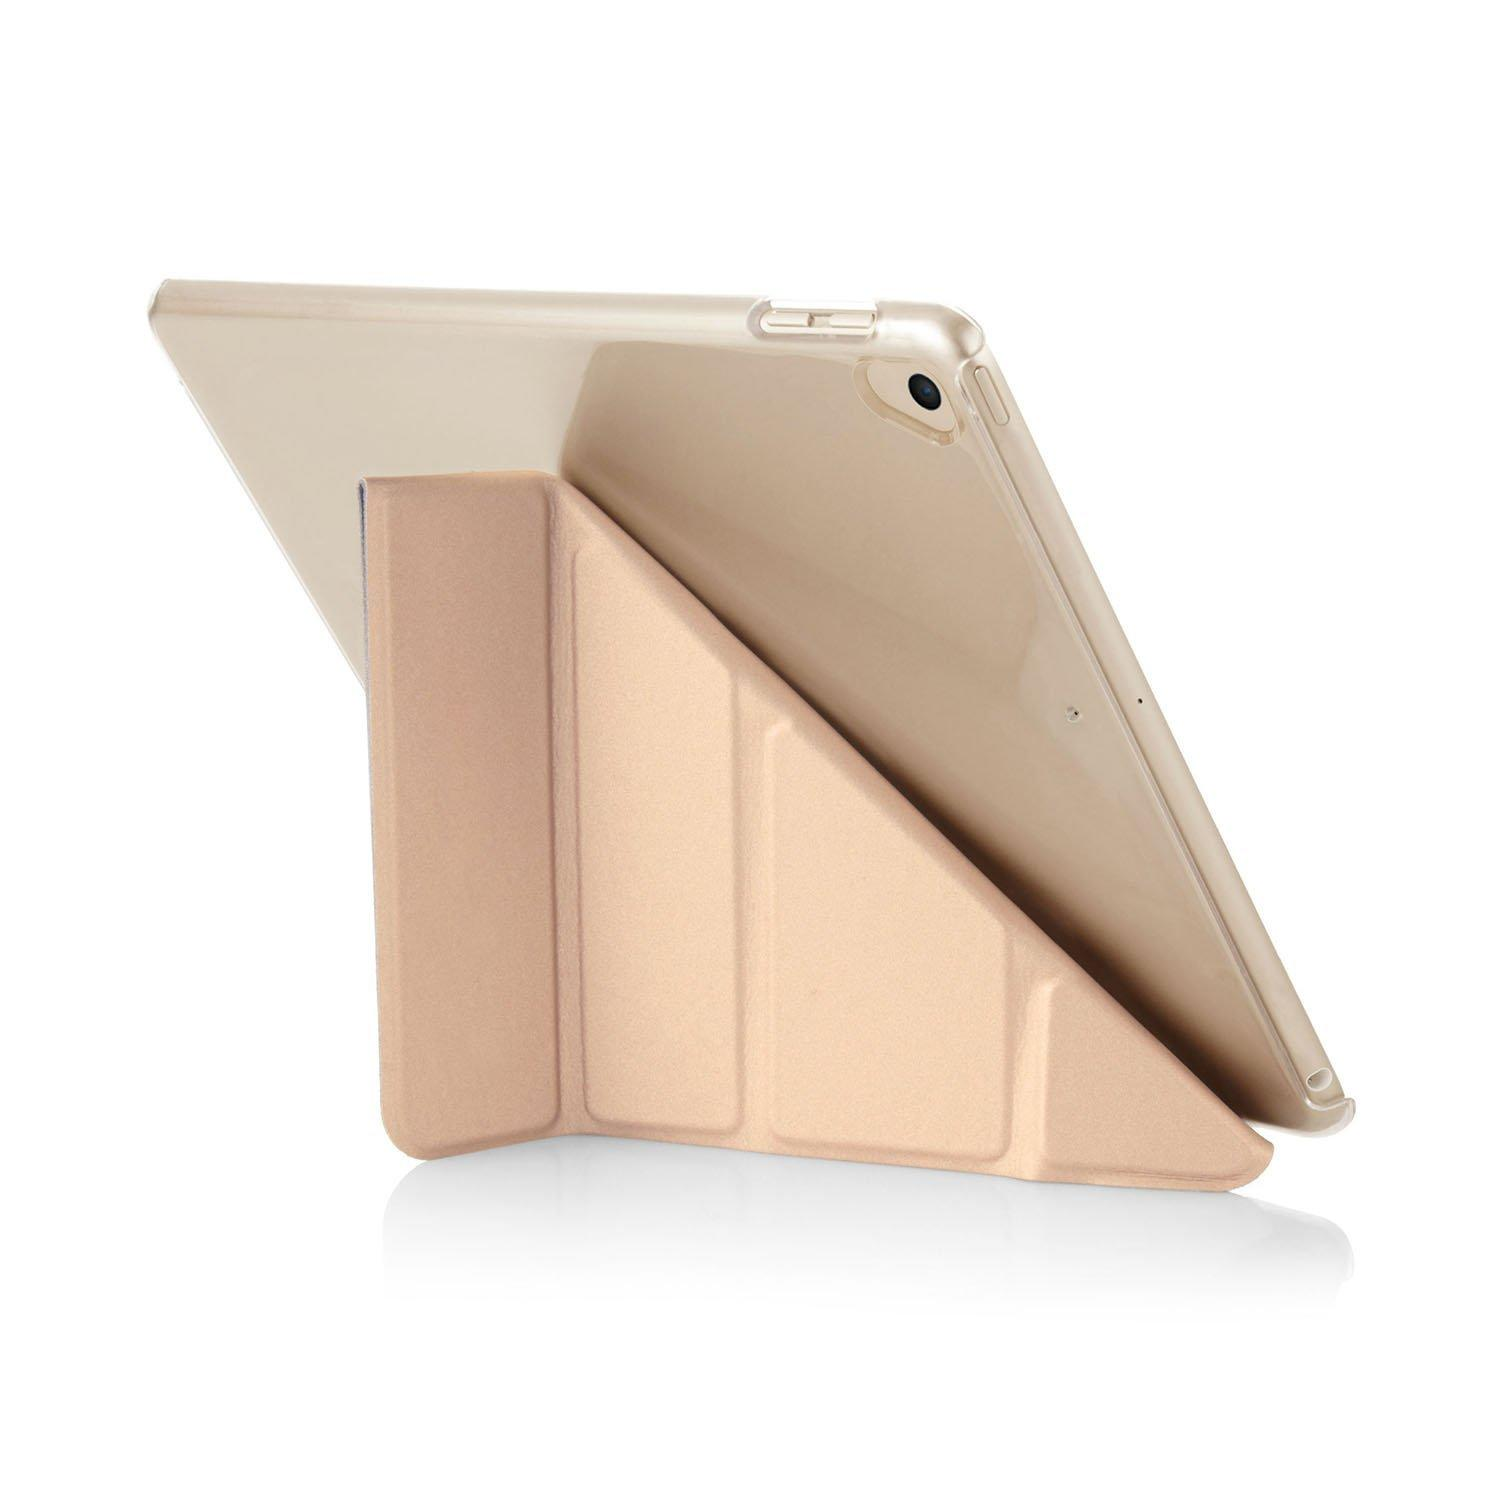 iPad 9.7 Case Origami Champagne Gold & Clear